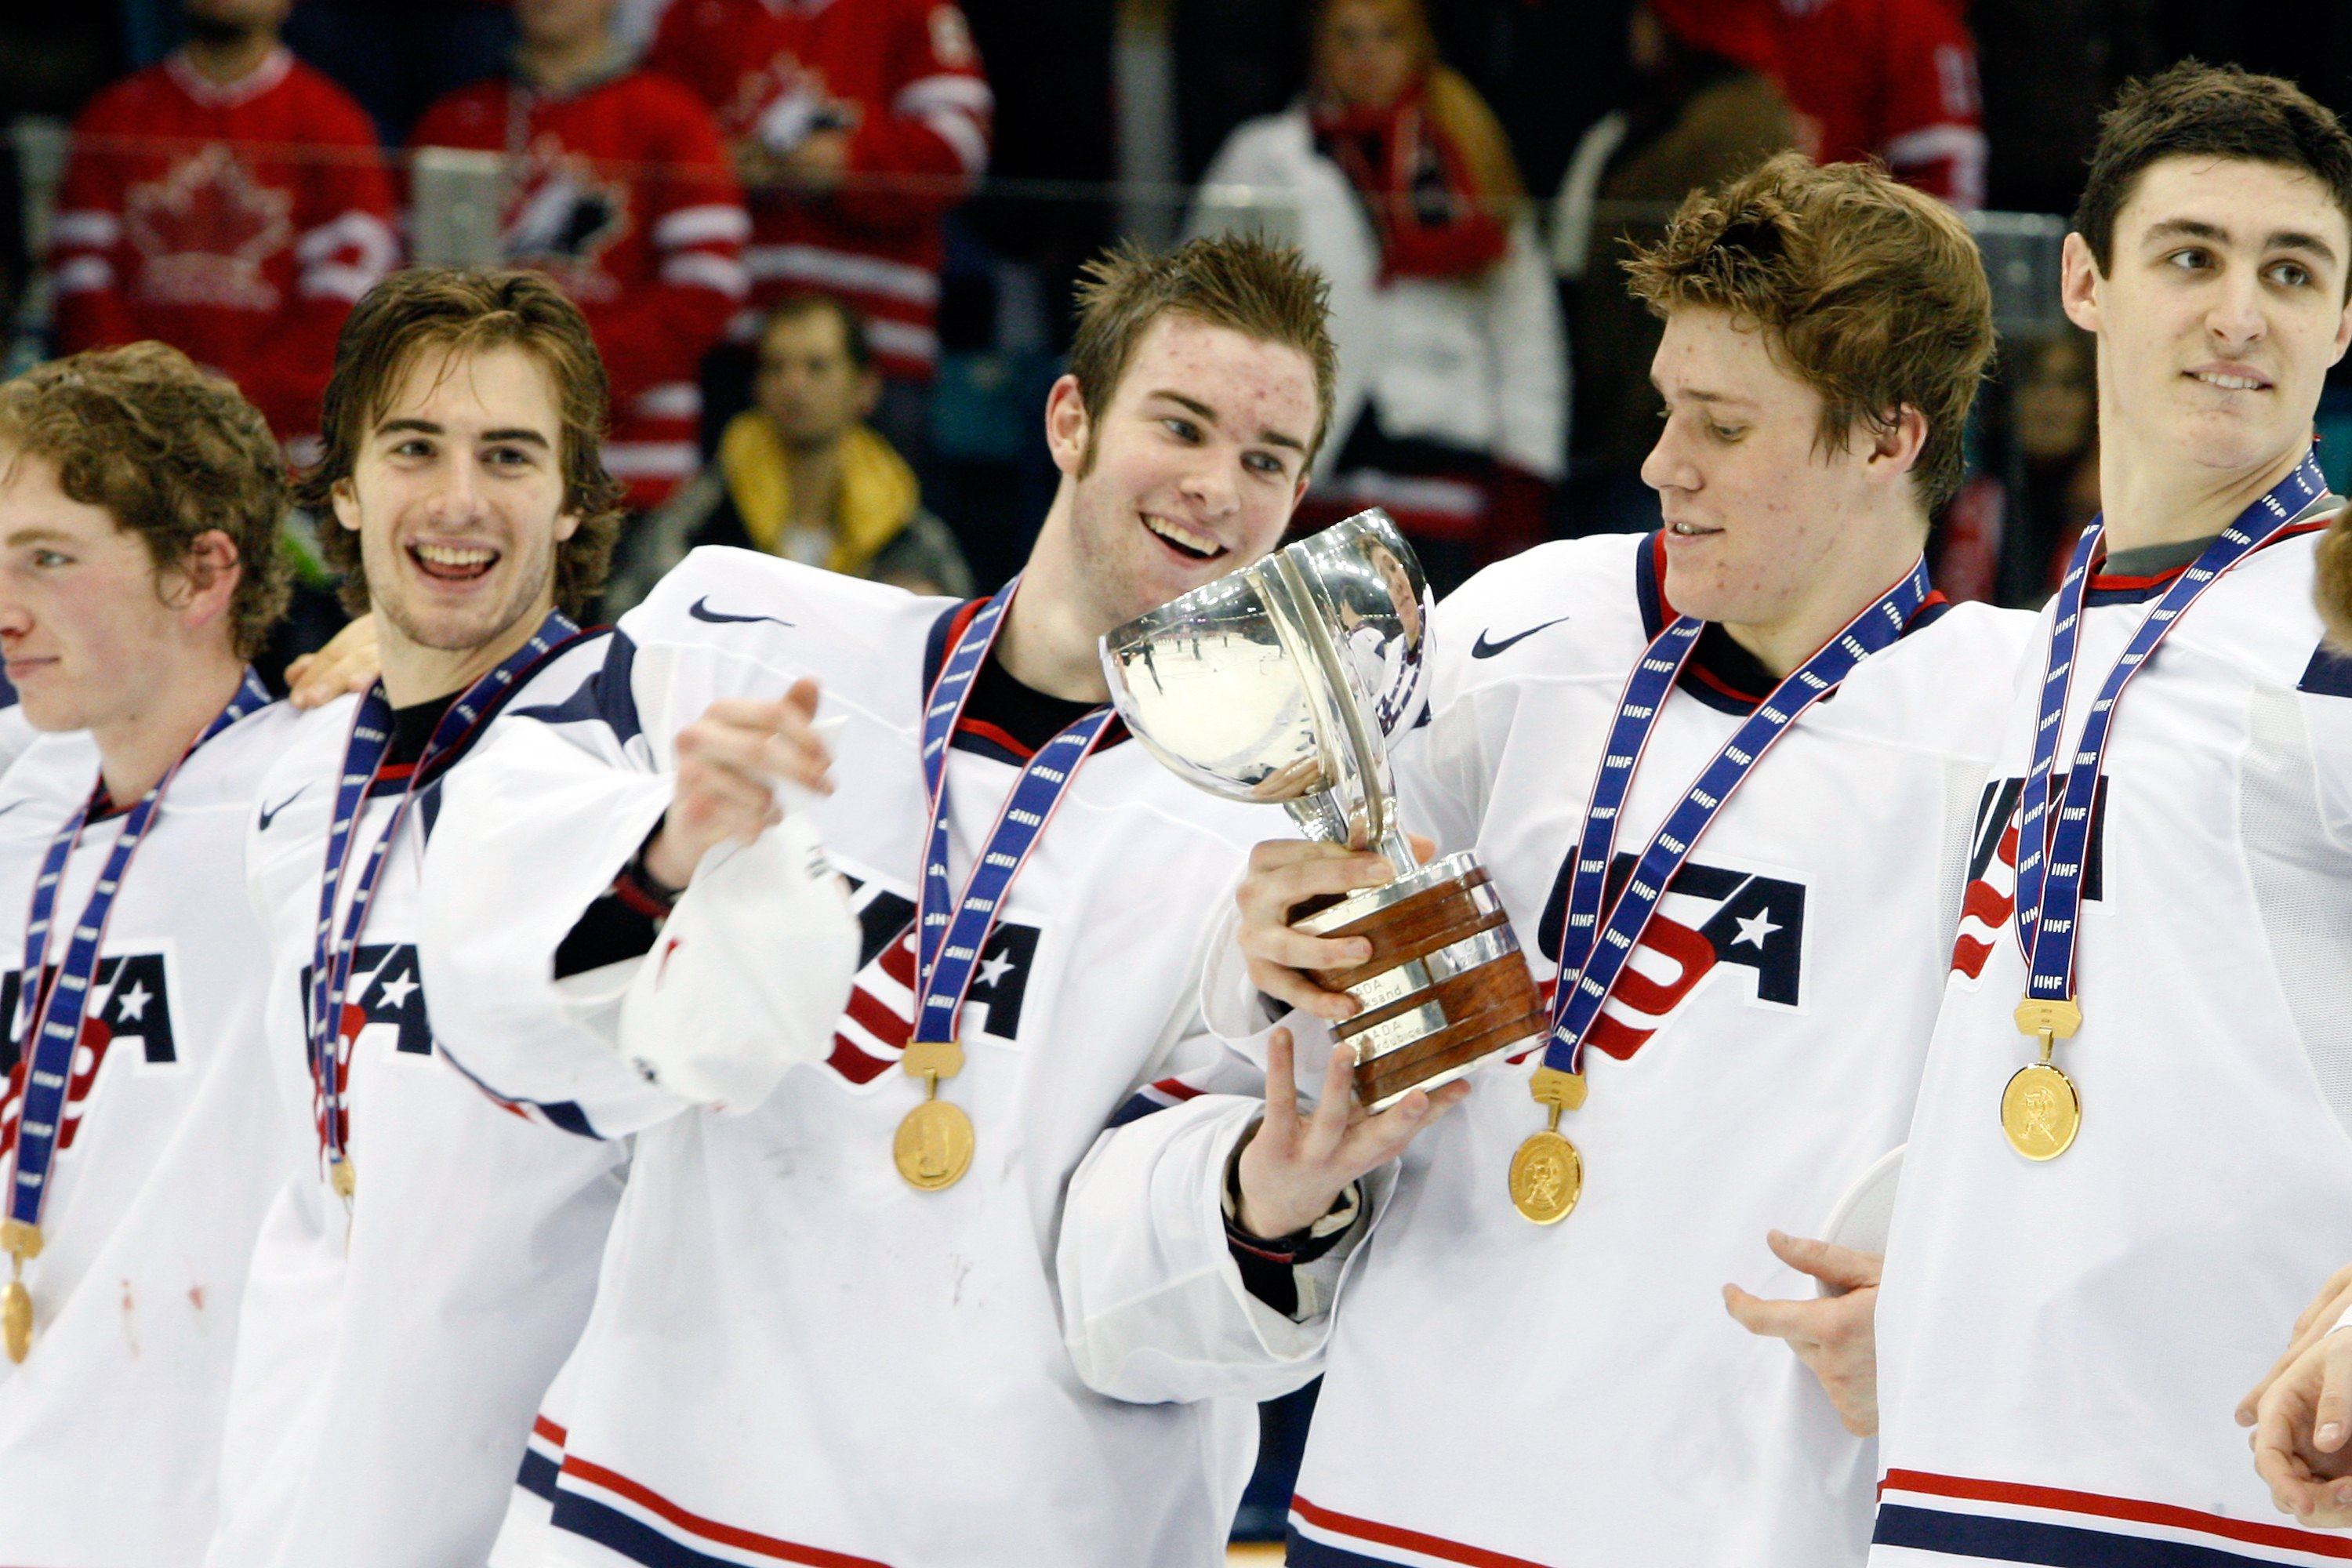 SASKATOON, SK - JANUARY 5:  Jack Campbell #1 of Team USA passes the 2010 IIHF Champions Cup to Jake Gardiner #28 of Team USA during the 2010 IIHF World Junior Championship Tournament Gold Medal game on January 5, 2010 at the Credit Union Centre in Saskato